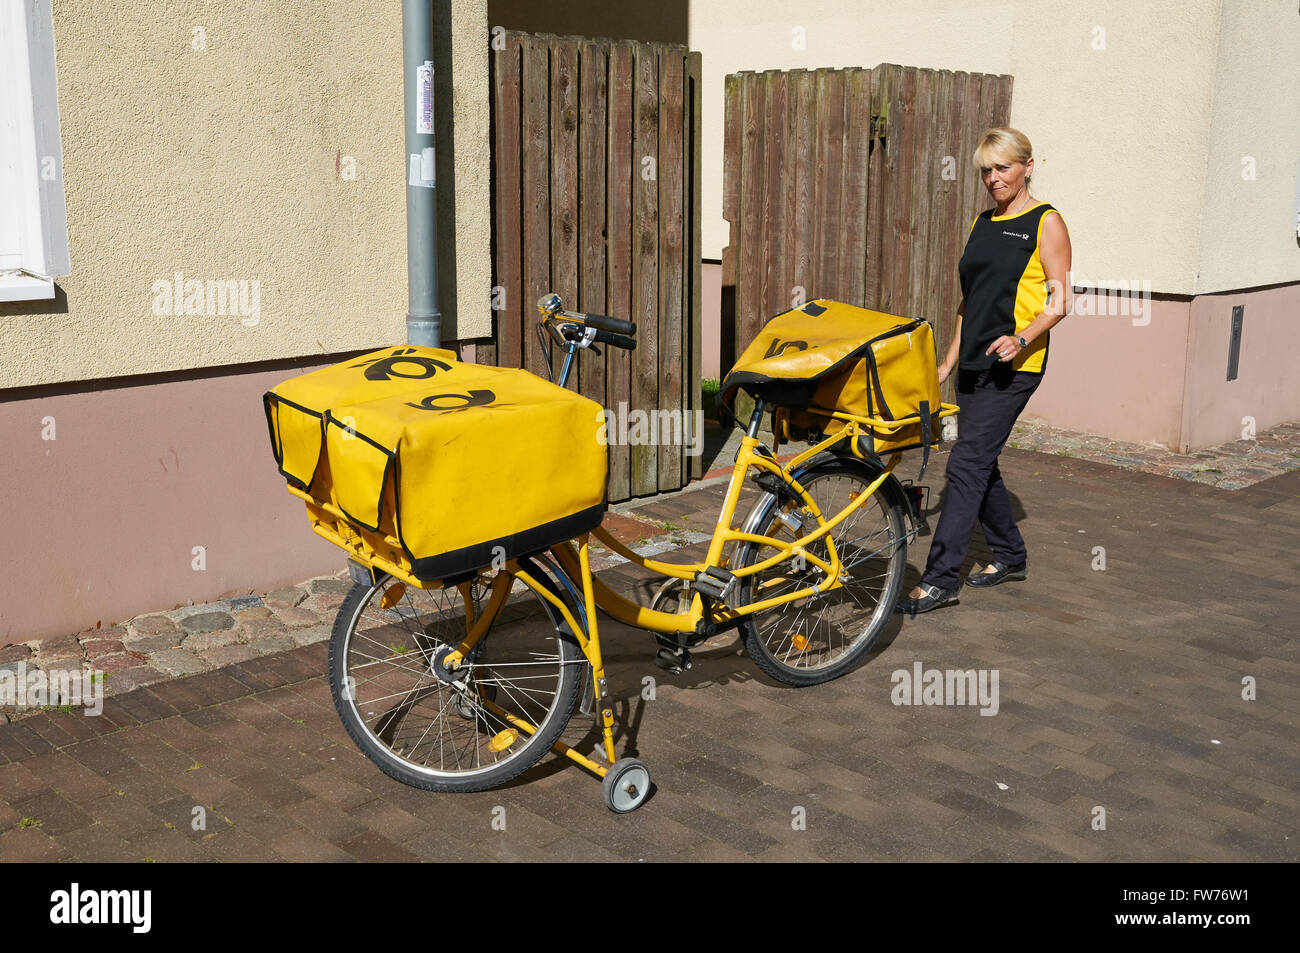 STRALSUND, GERMANY - AUGUST 13, 2015: The postwoman with his yellow bike delivers the mail - Stock Image